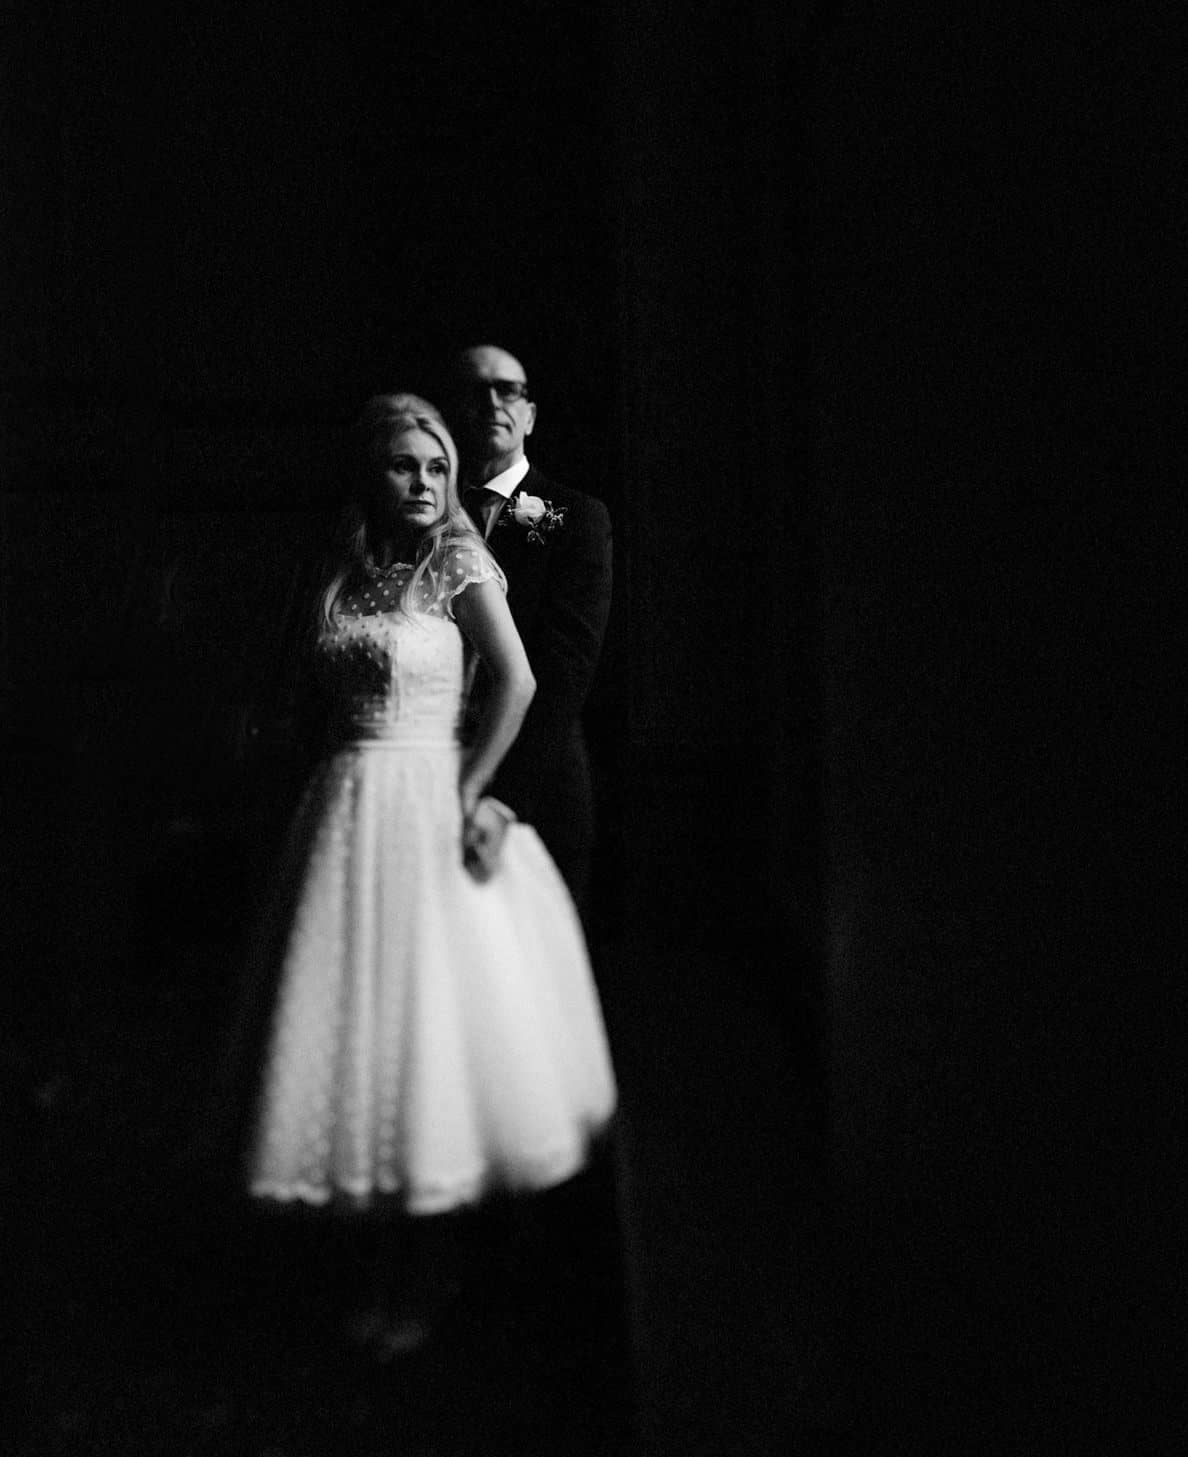 bride and groom black and white portraits at the town hall